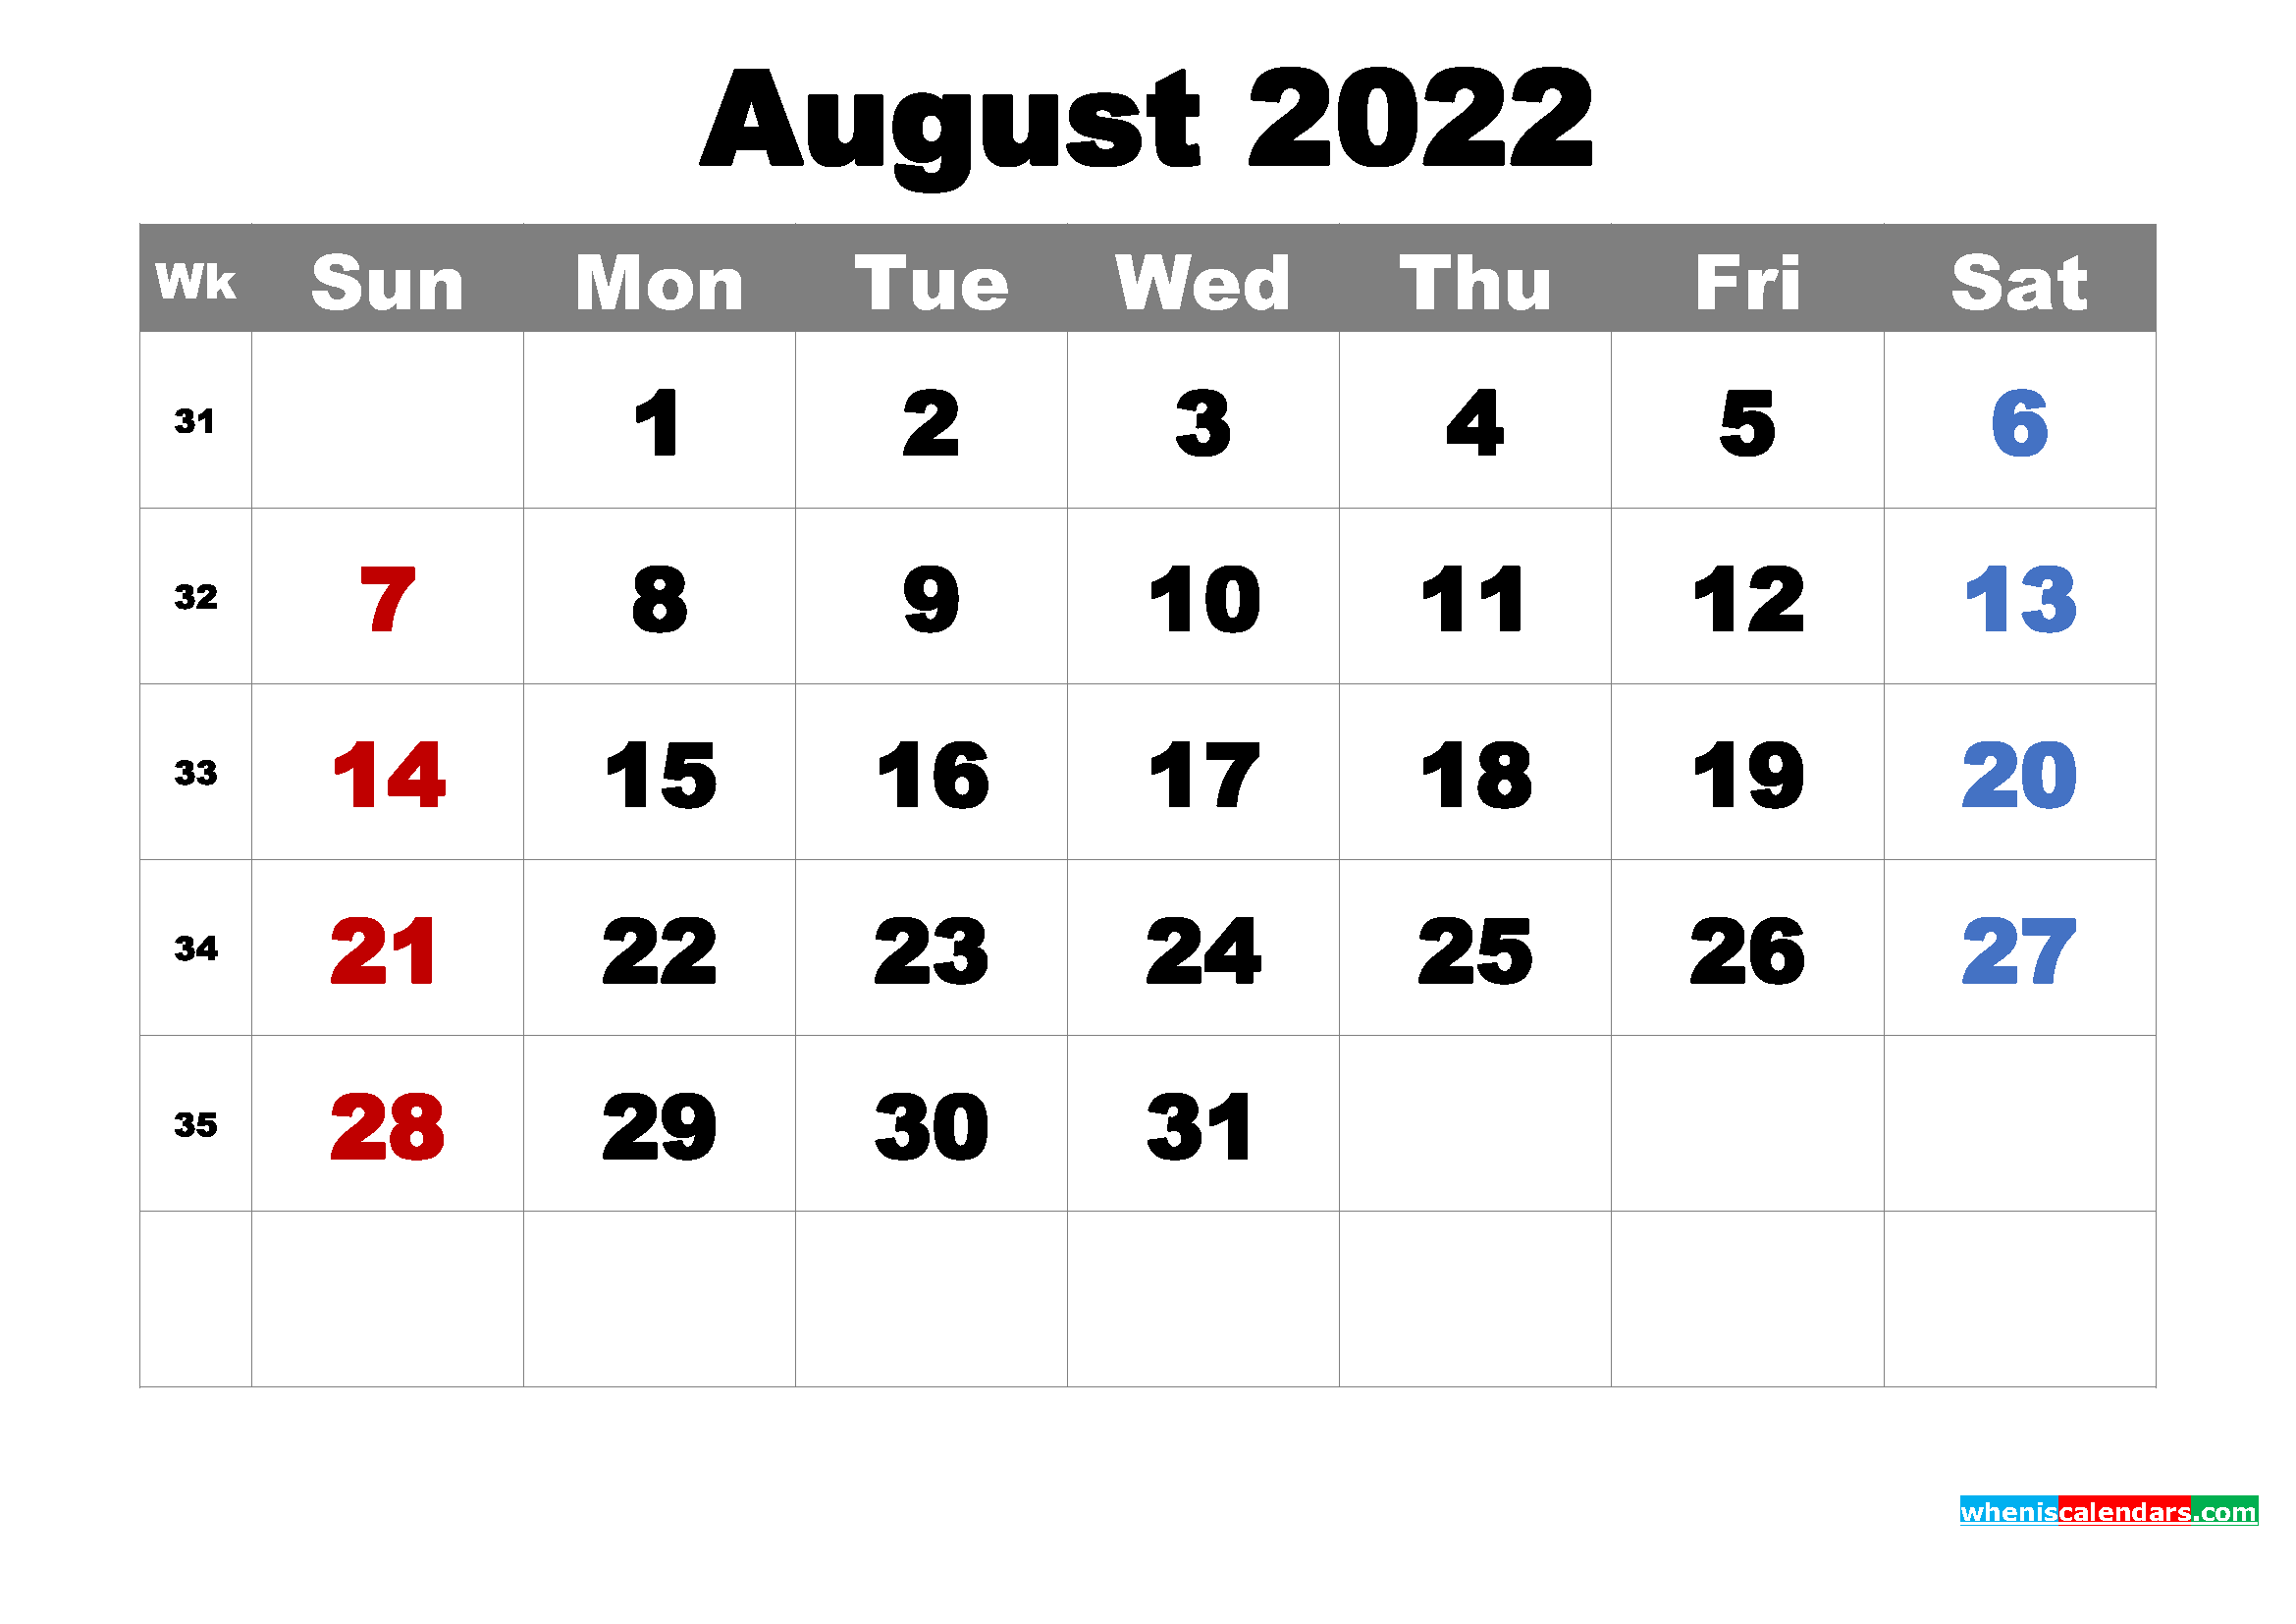 Printable Calendar August 2022 with Holidays as Word, PDF